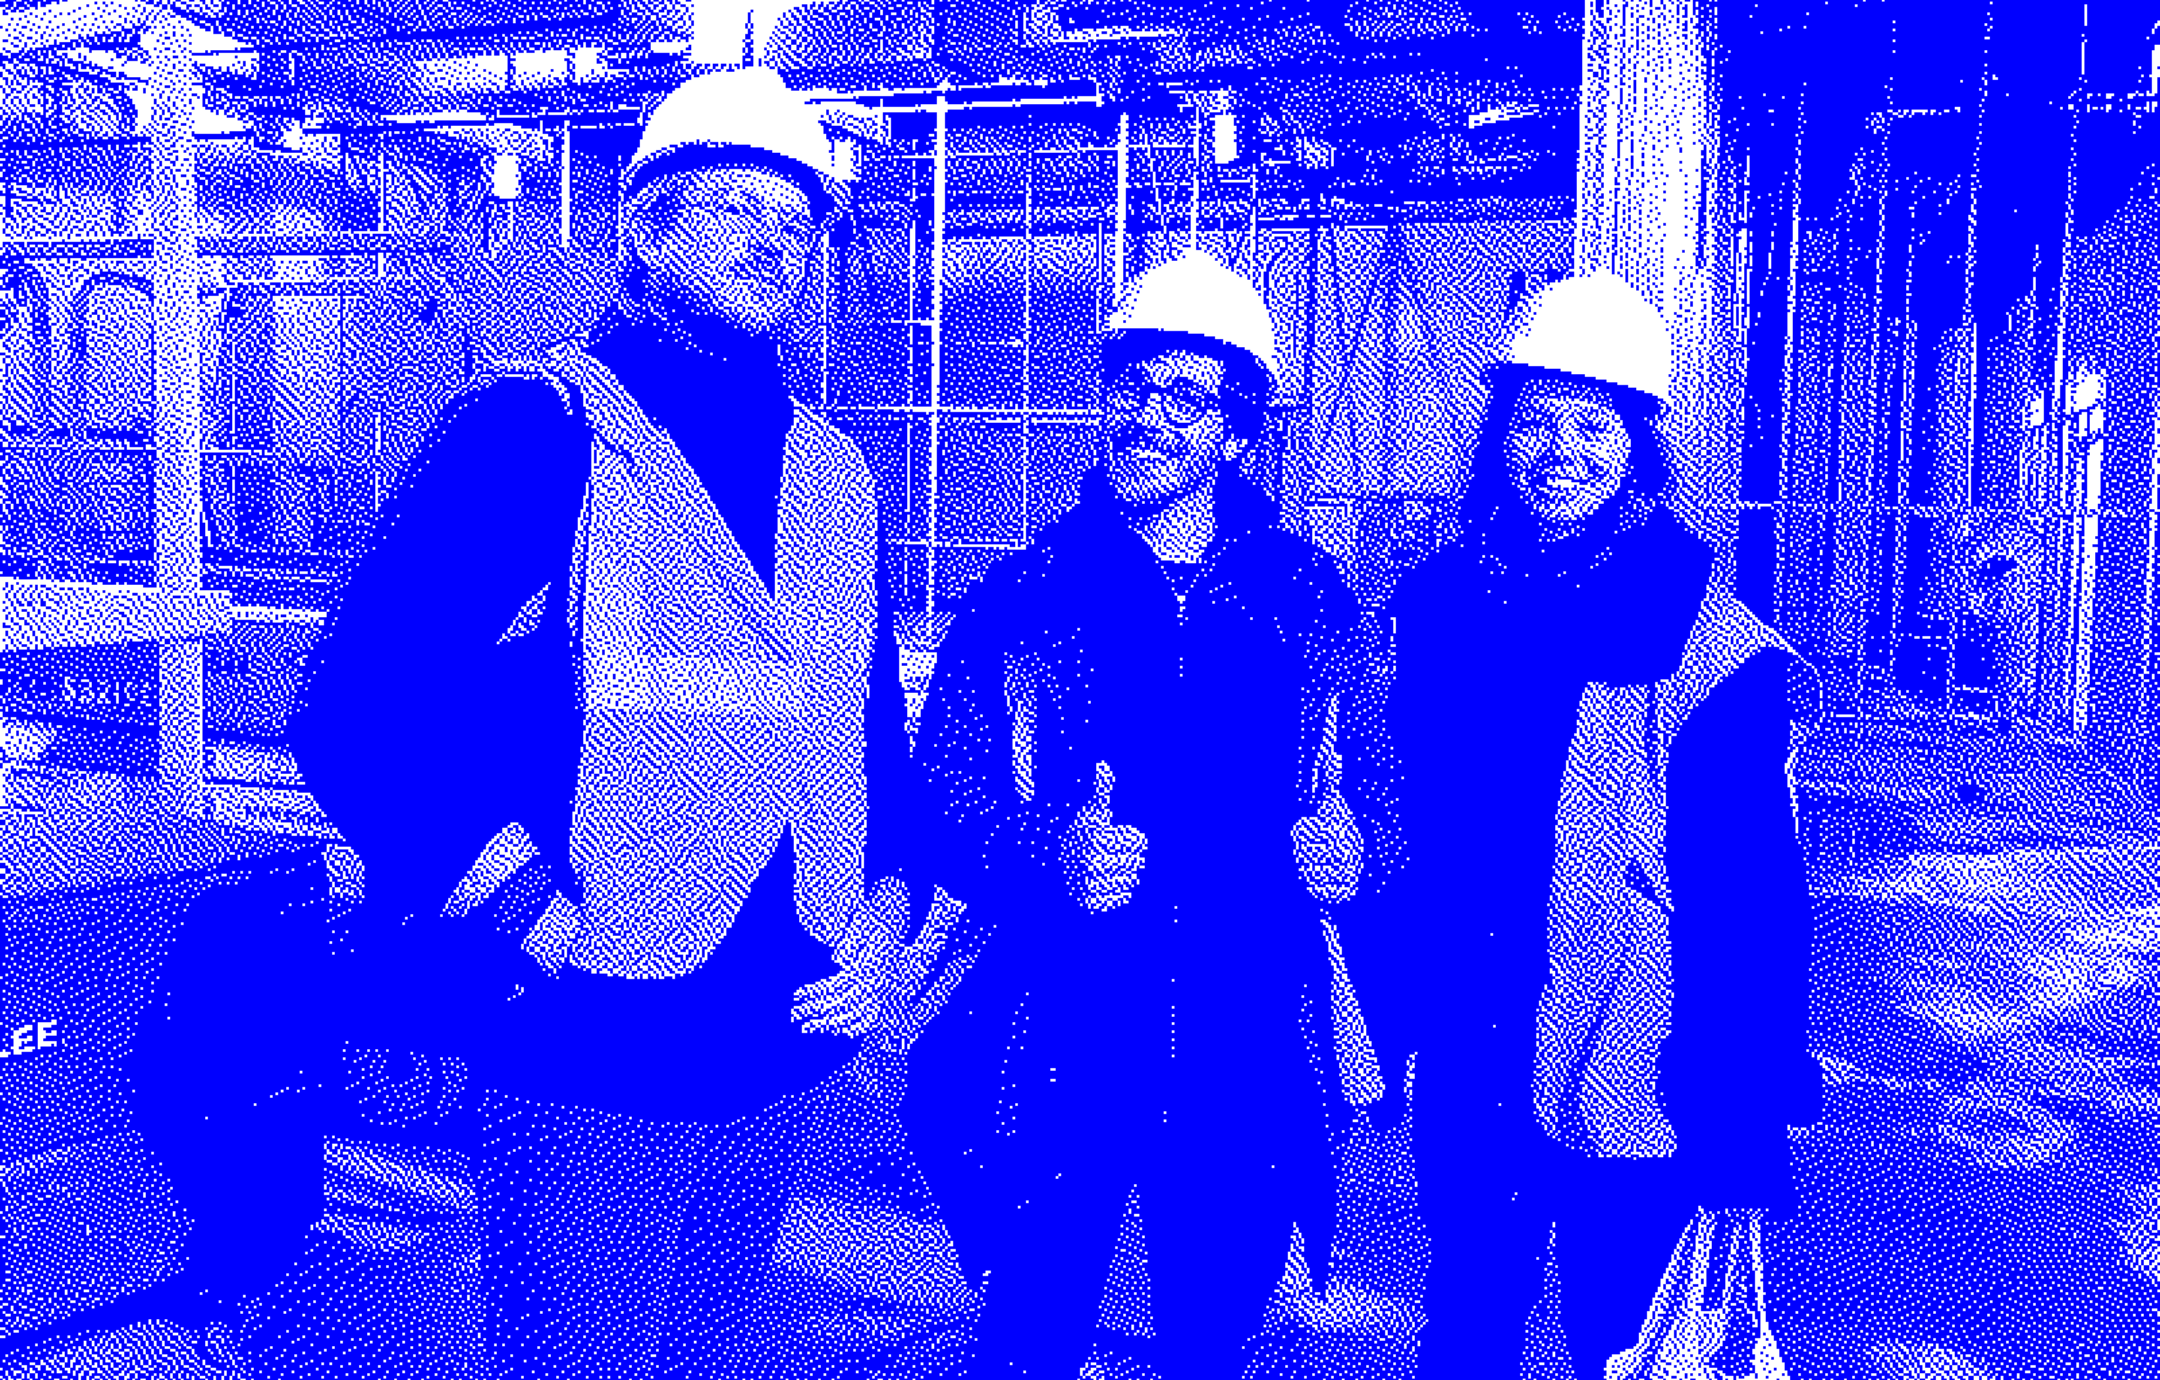 Hugh Francis, Sebastian Odell, and Isabel Münter of Sanctuary Computer wearing hardhats at an indoor construction site